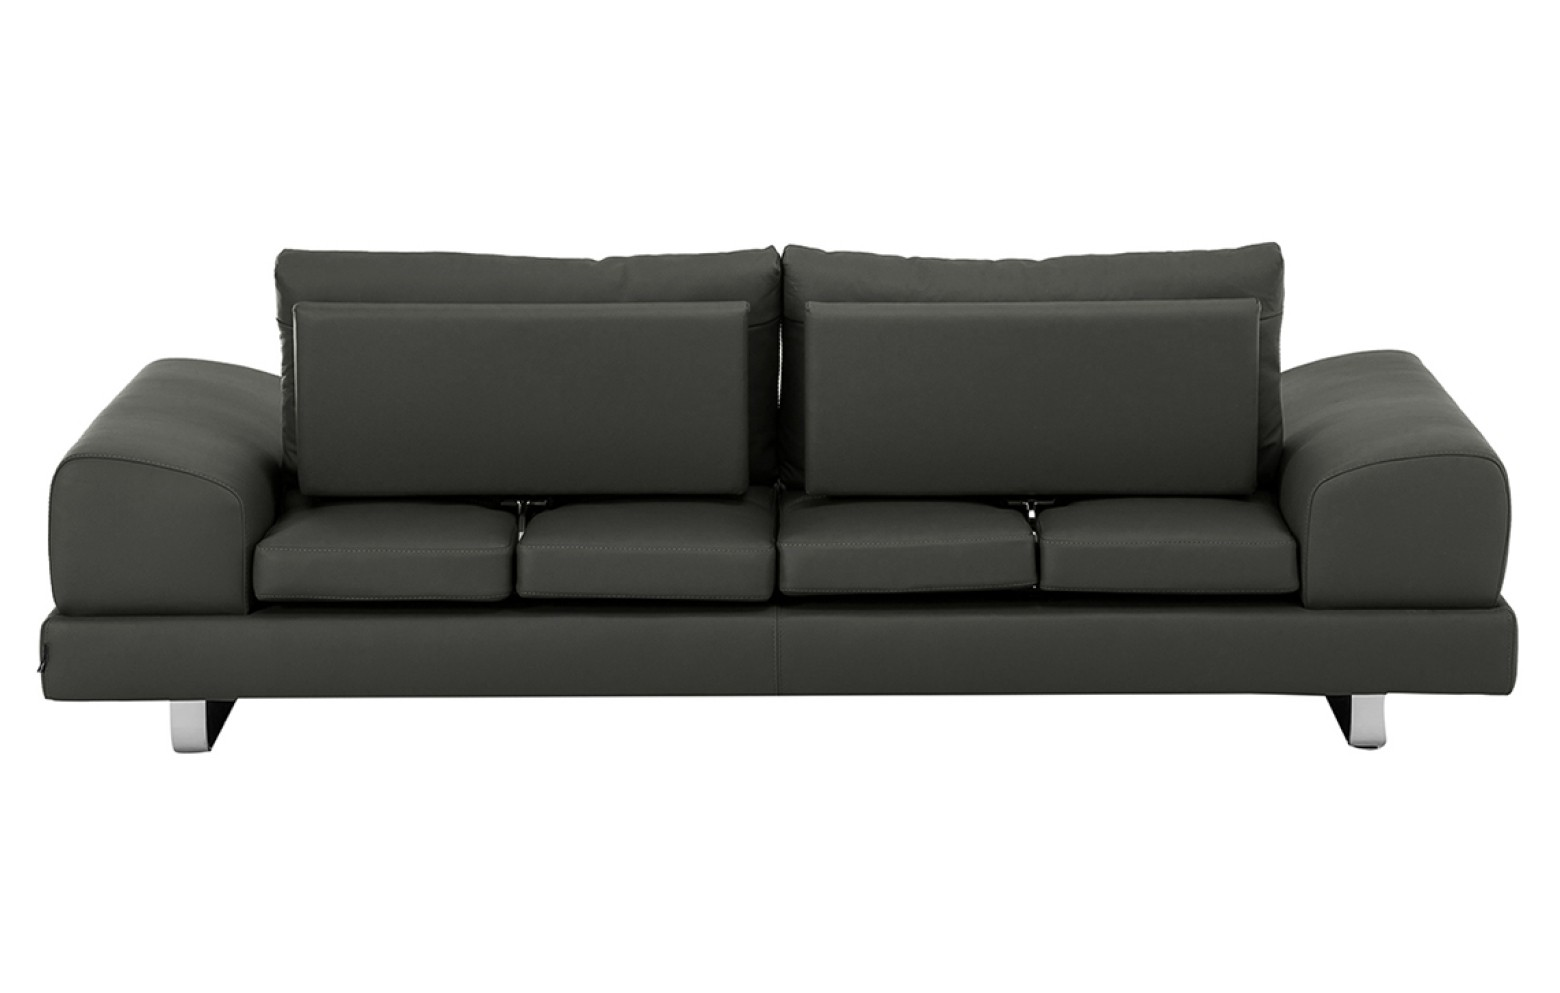 bloom sofas online outlet who 39 s perfect. Black Bedroom Furniture Sets. Home Design Ideas